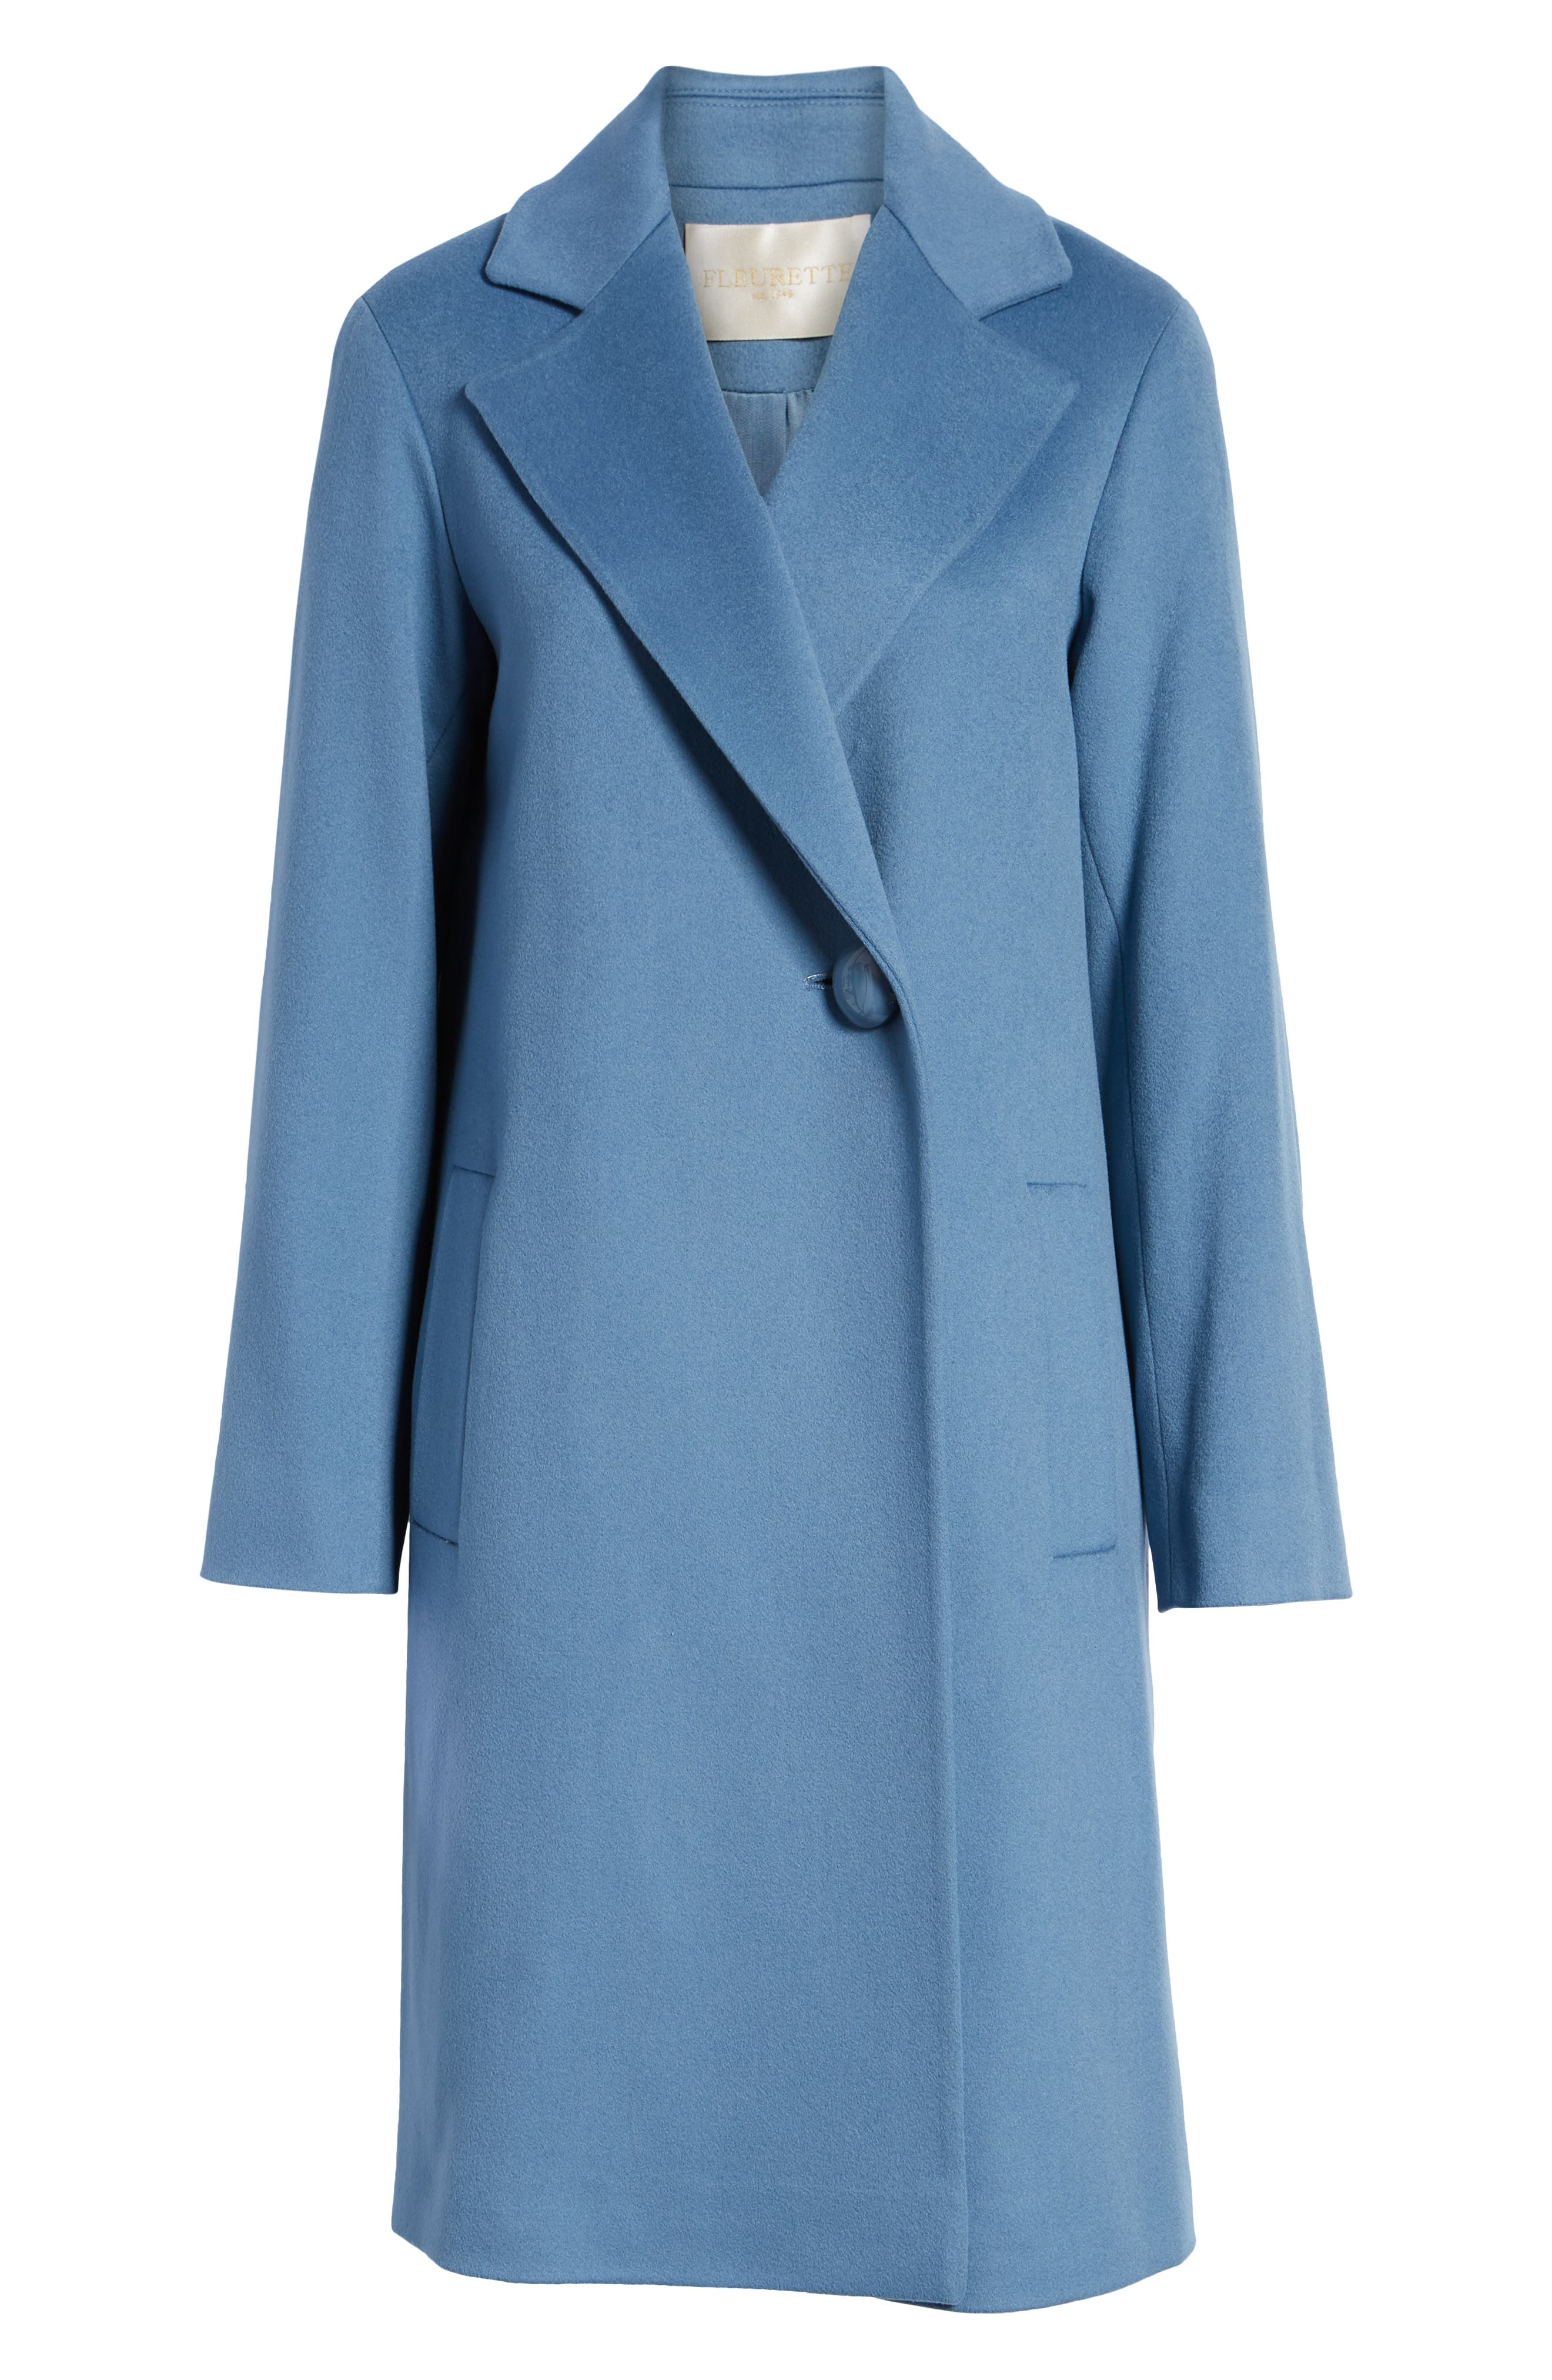 FLEURETTE, One-Button Loro Piana Wool Coat, Alternate thumbnail 6, color, CORNFLOWER